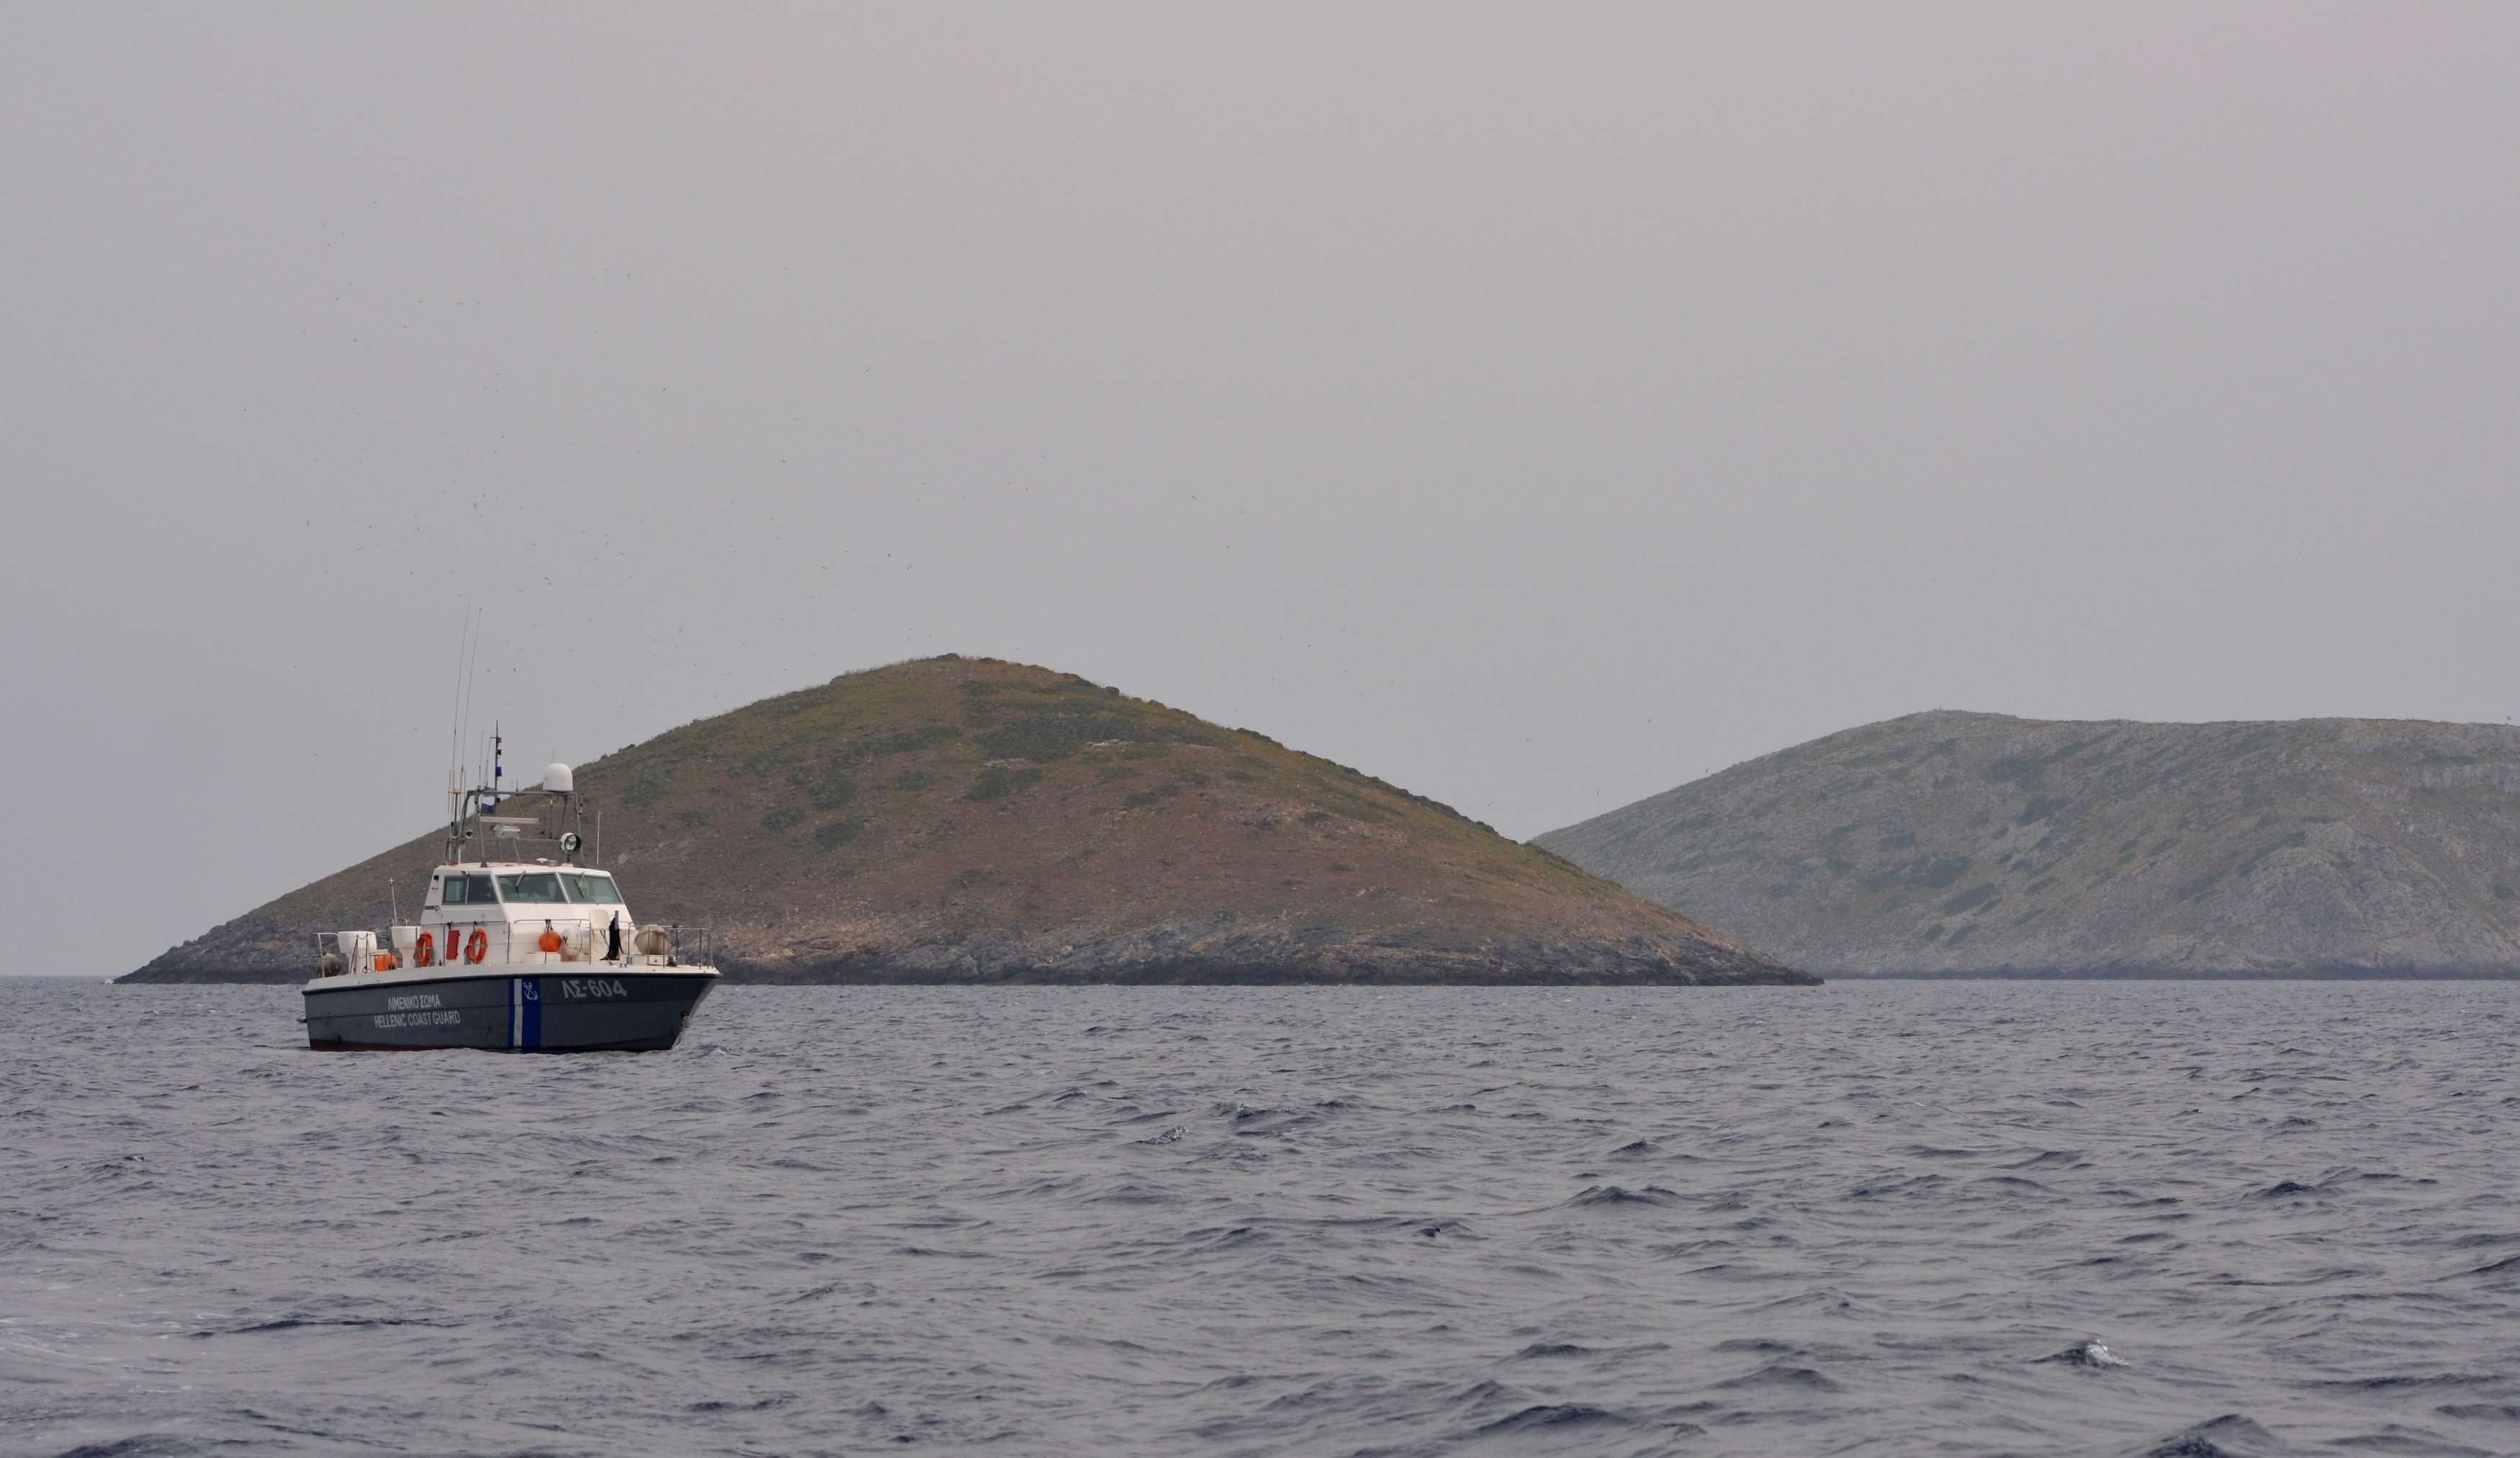 A Greek Coast Guard vessel sails next to the Mikros Anthropofas (L) and Megalos Anthropofas (R) islets , on April 16. (Reuters)